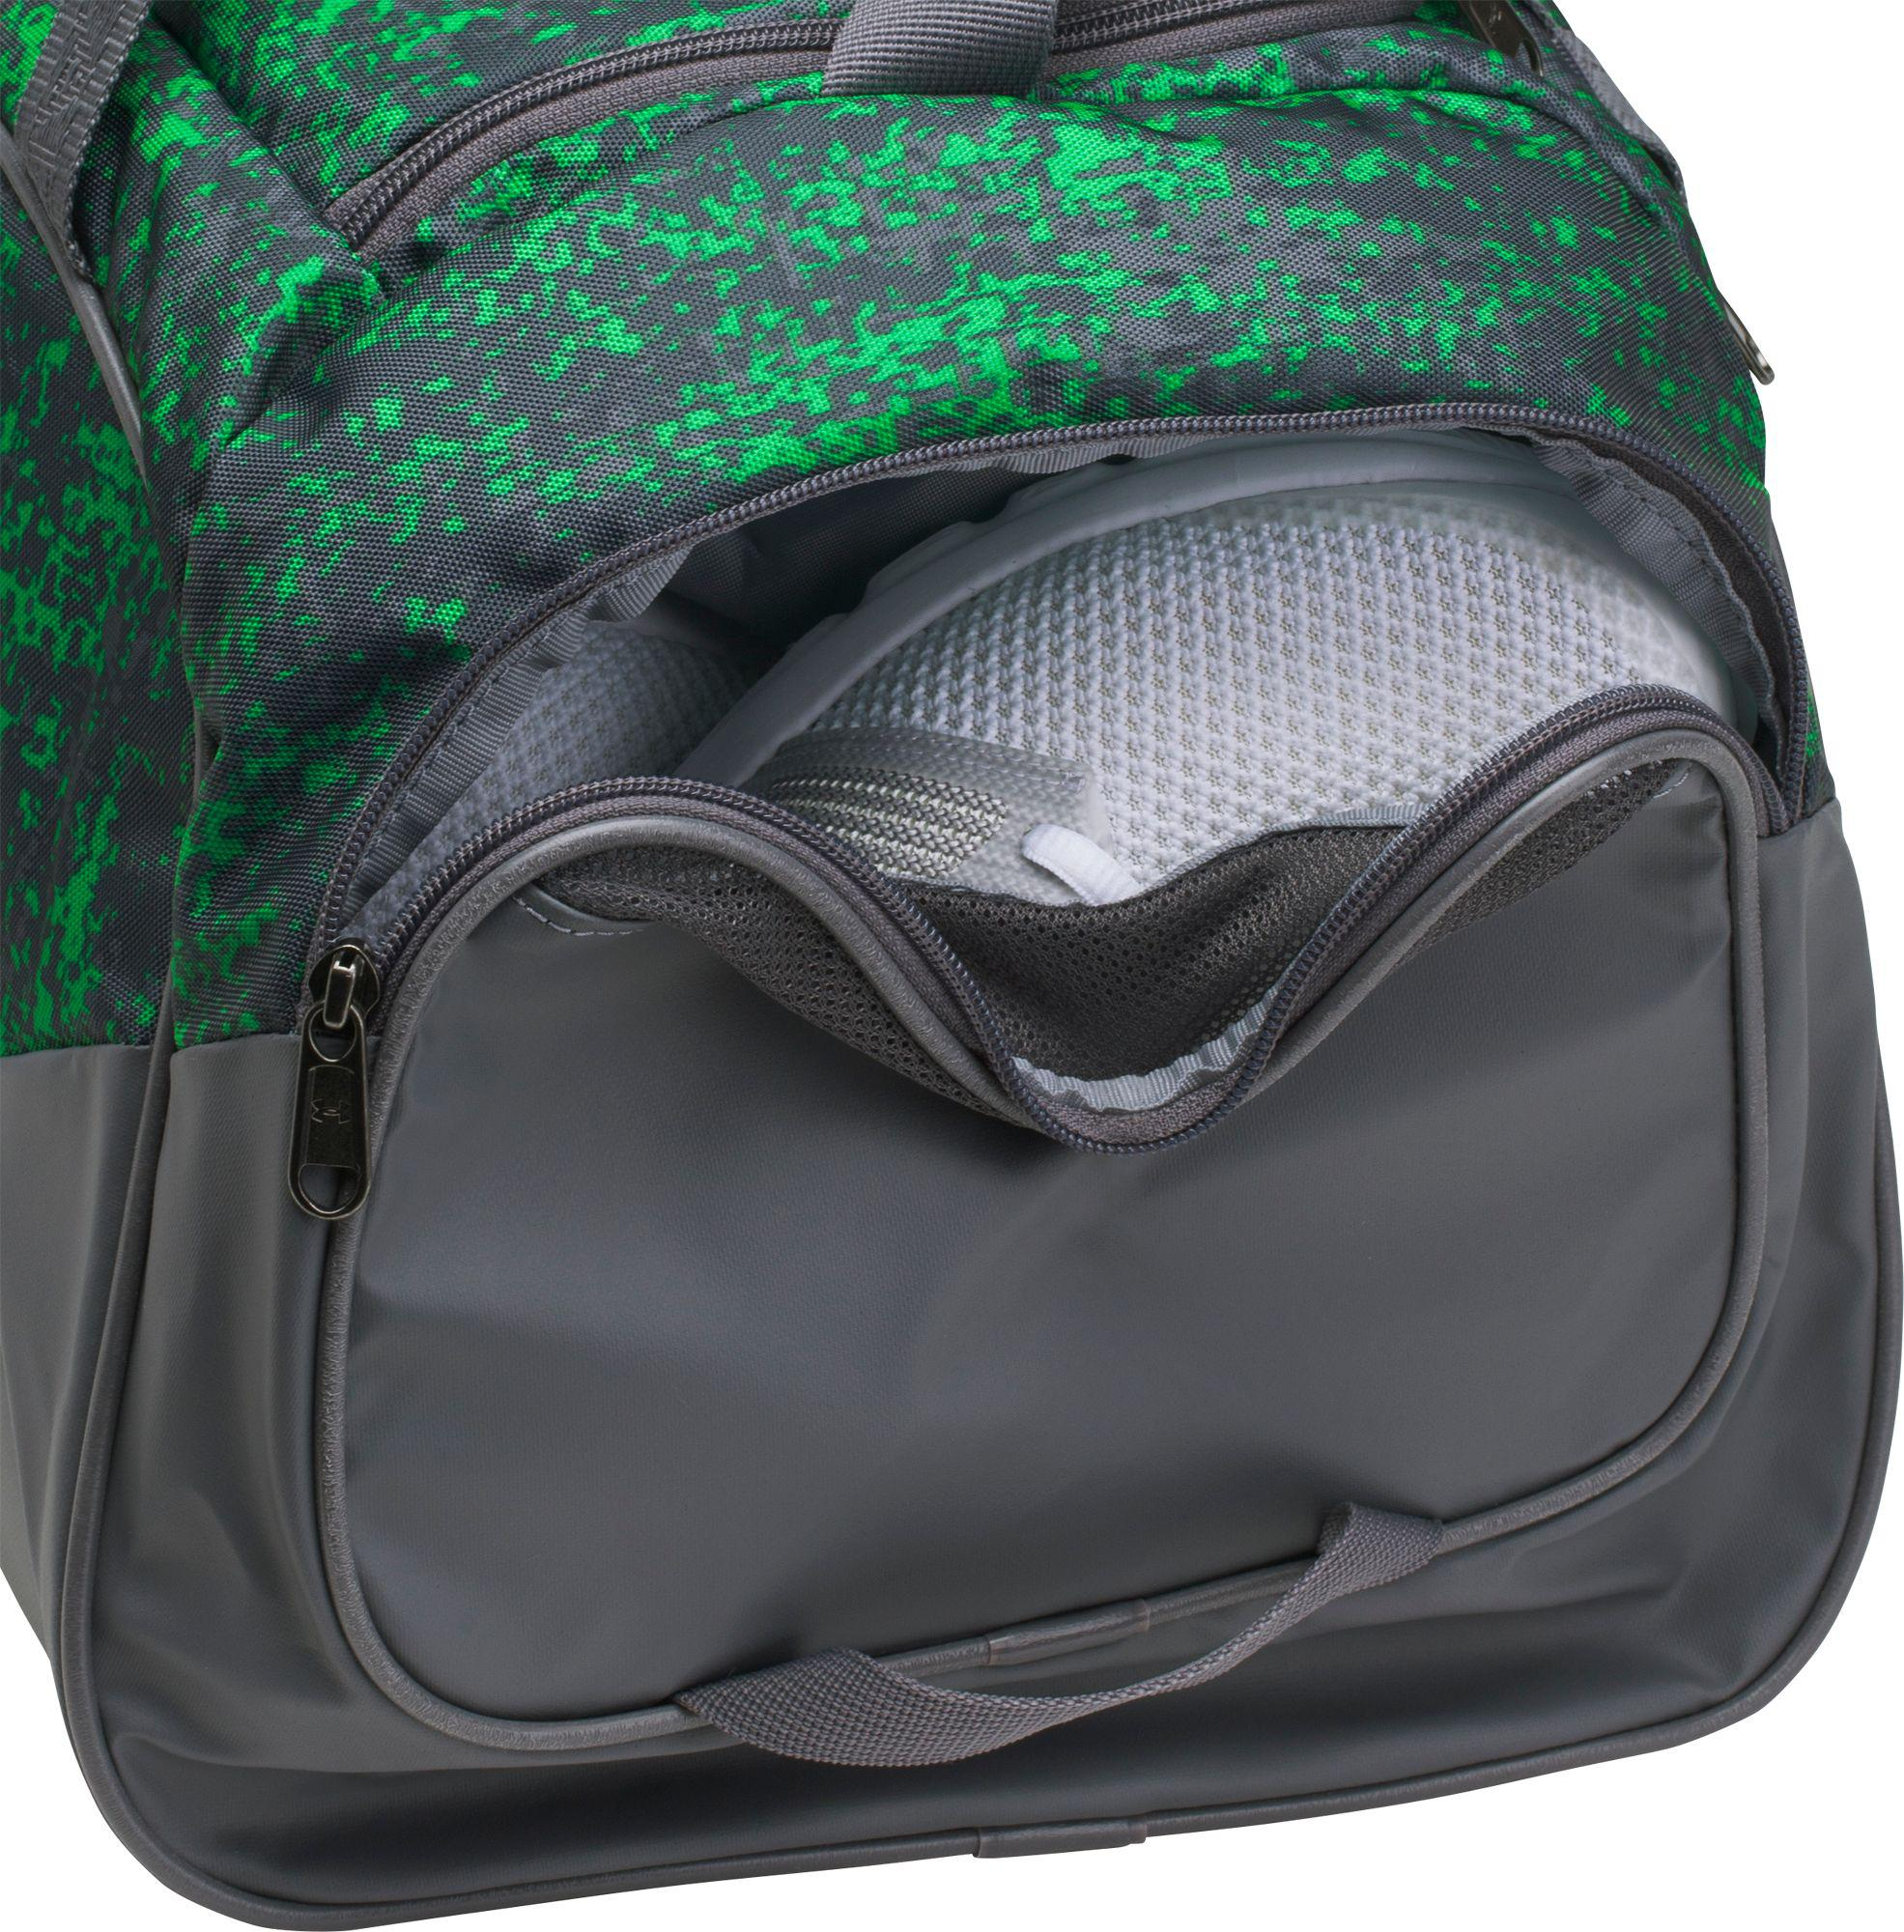 Lyst - Under Armour Undeniable 3.0 Small Duffle Bag in Green for Men 4a01c9134bbc0